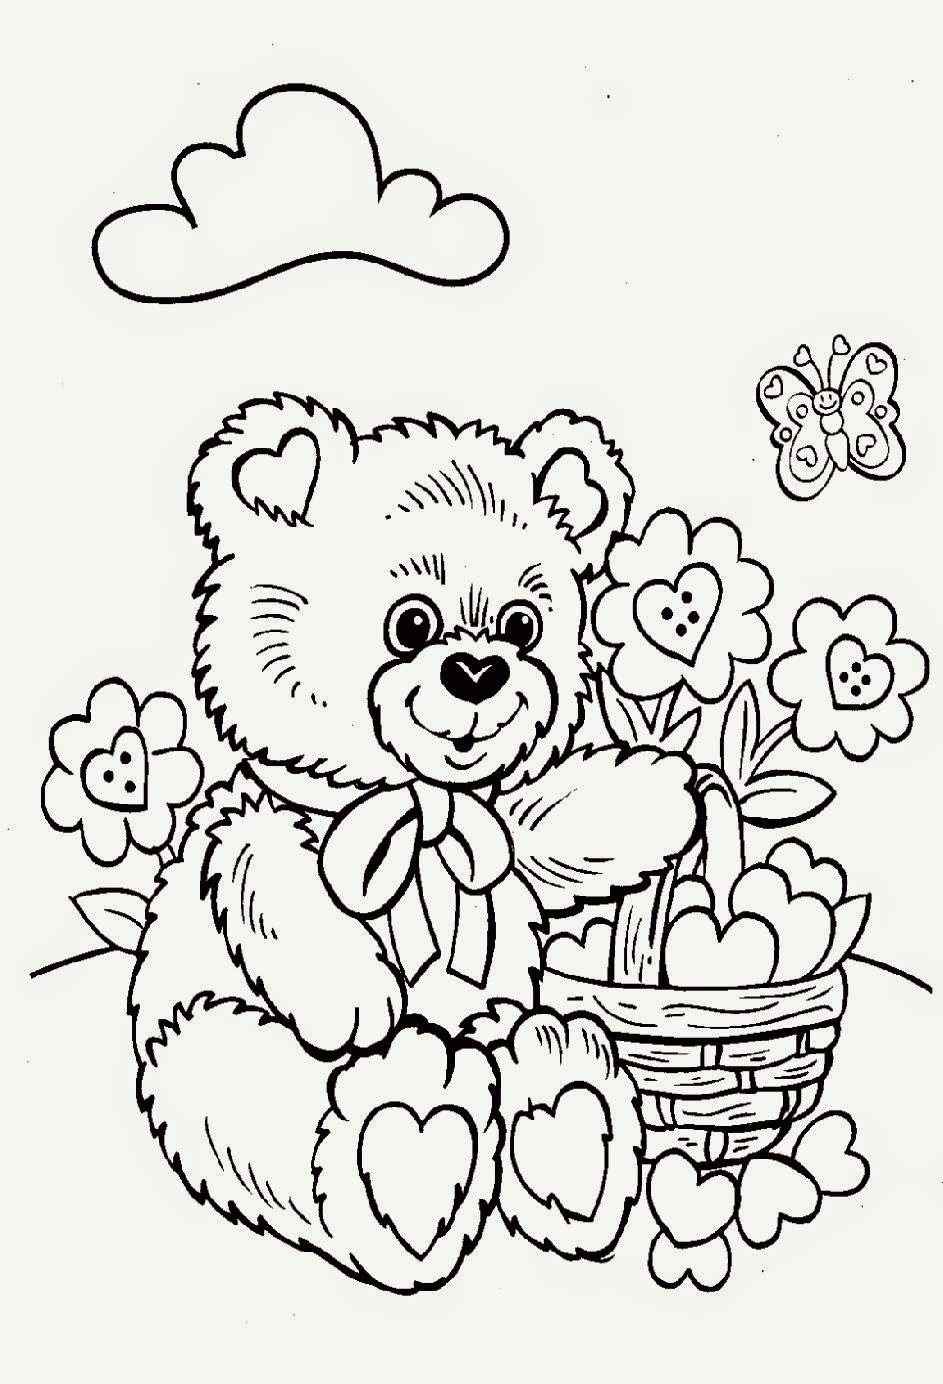 Crayola coloring pages free coloring pictures for Crayola color pages